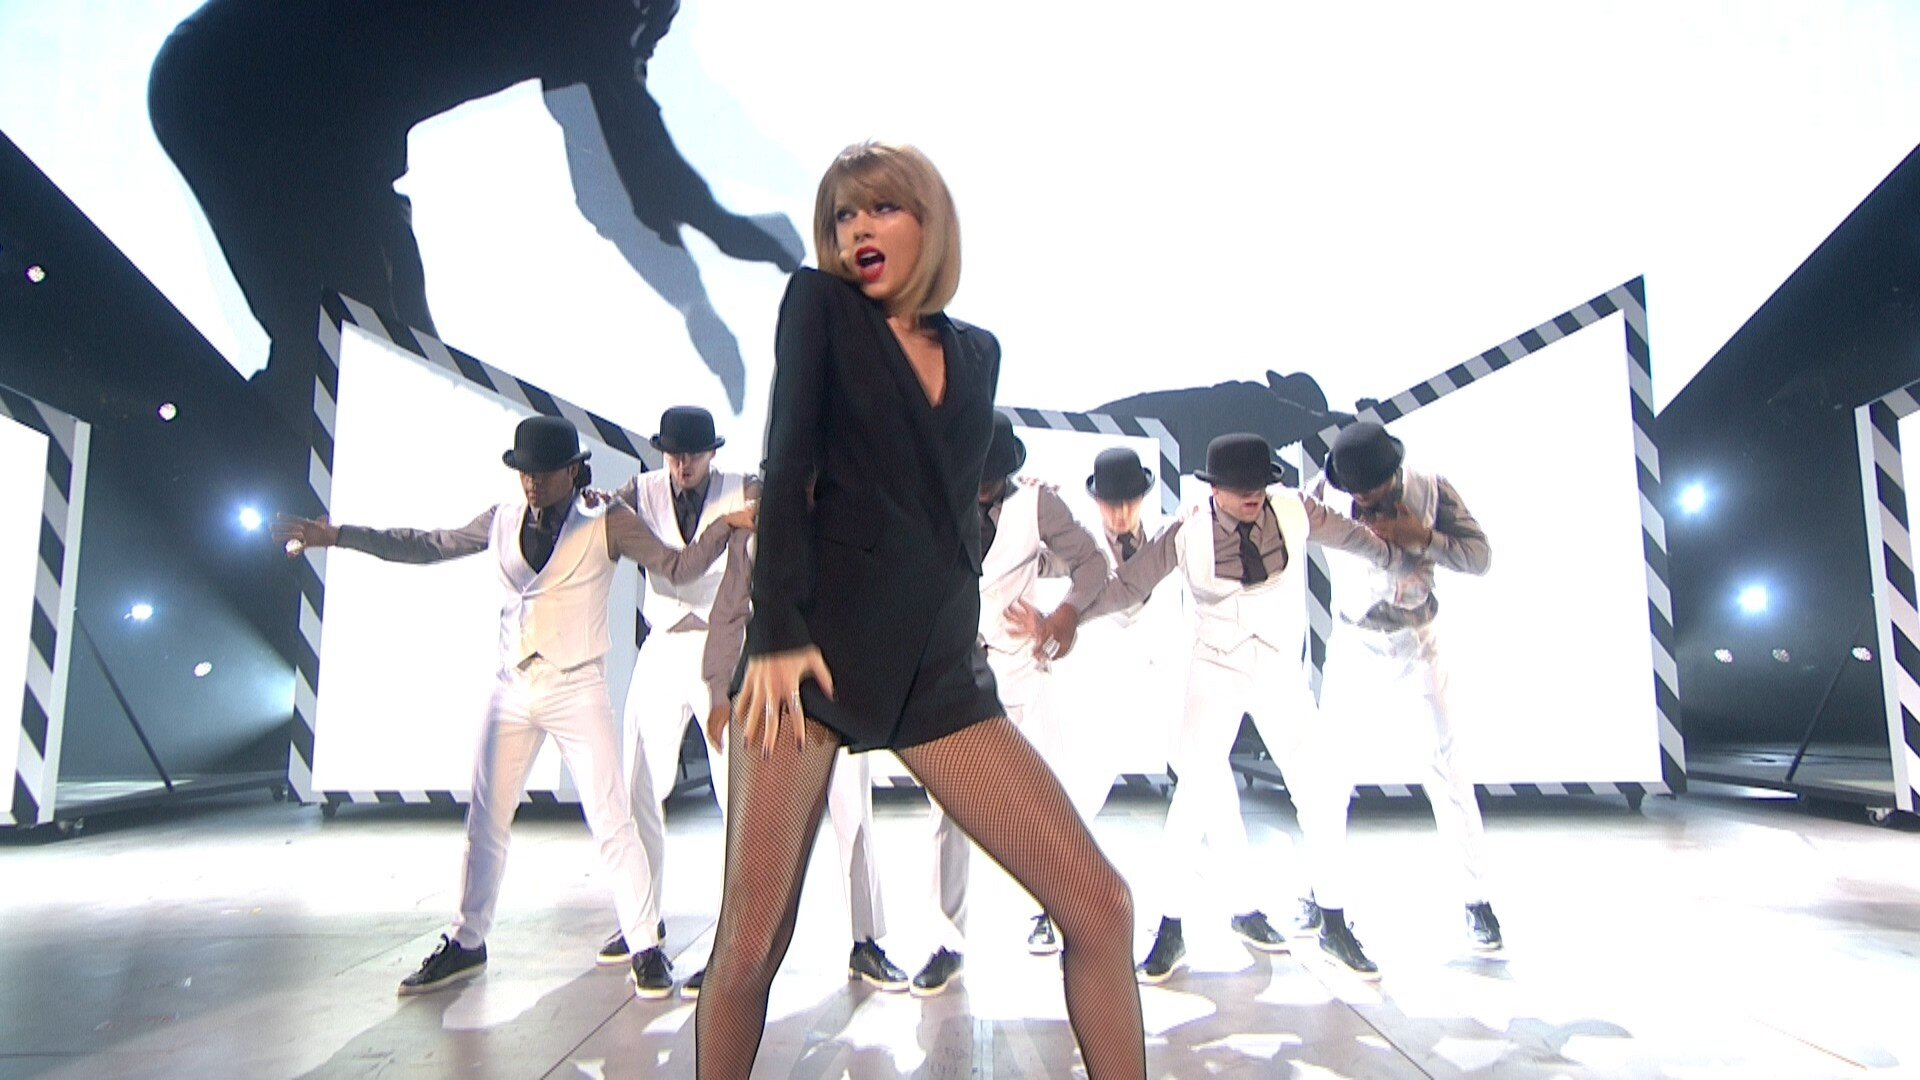 Taylor Swift - Blank Space - BRIT Awards 2015 1080i HDTV 45 Mbps MPA2.0 4-2-2 H..jpg